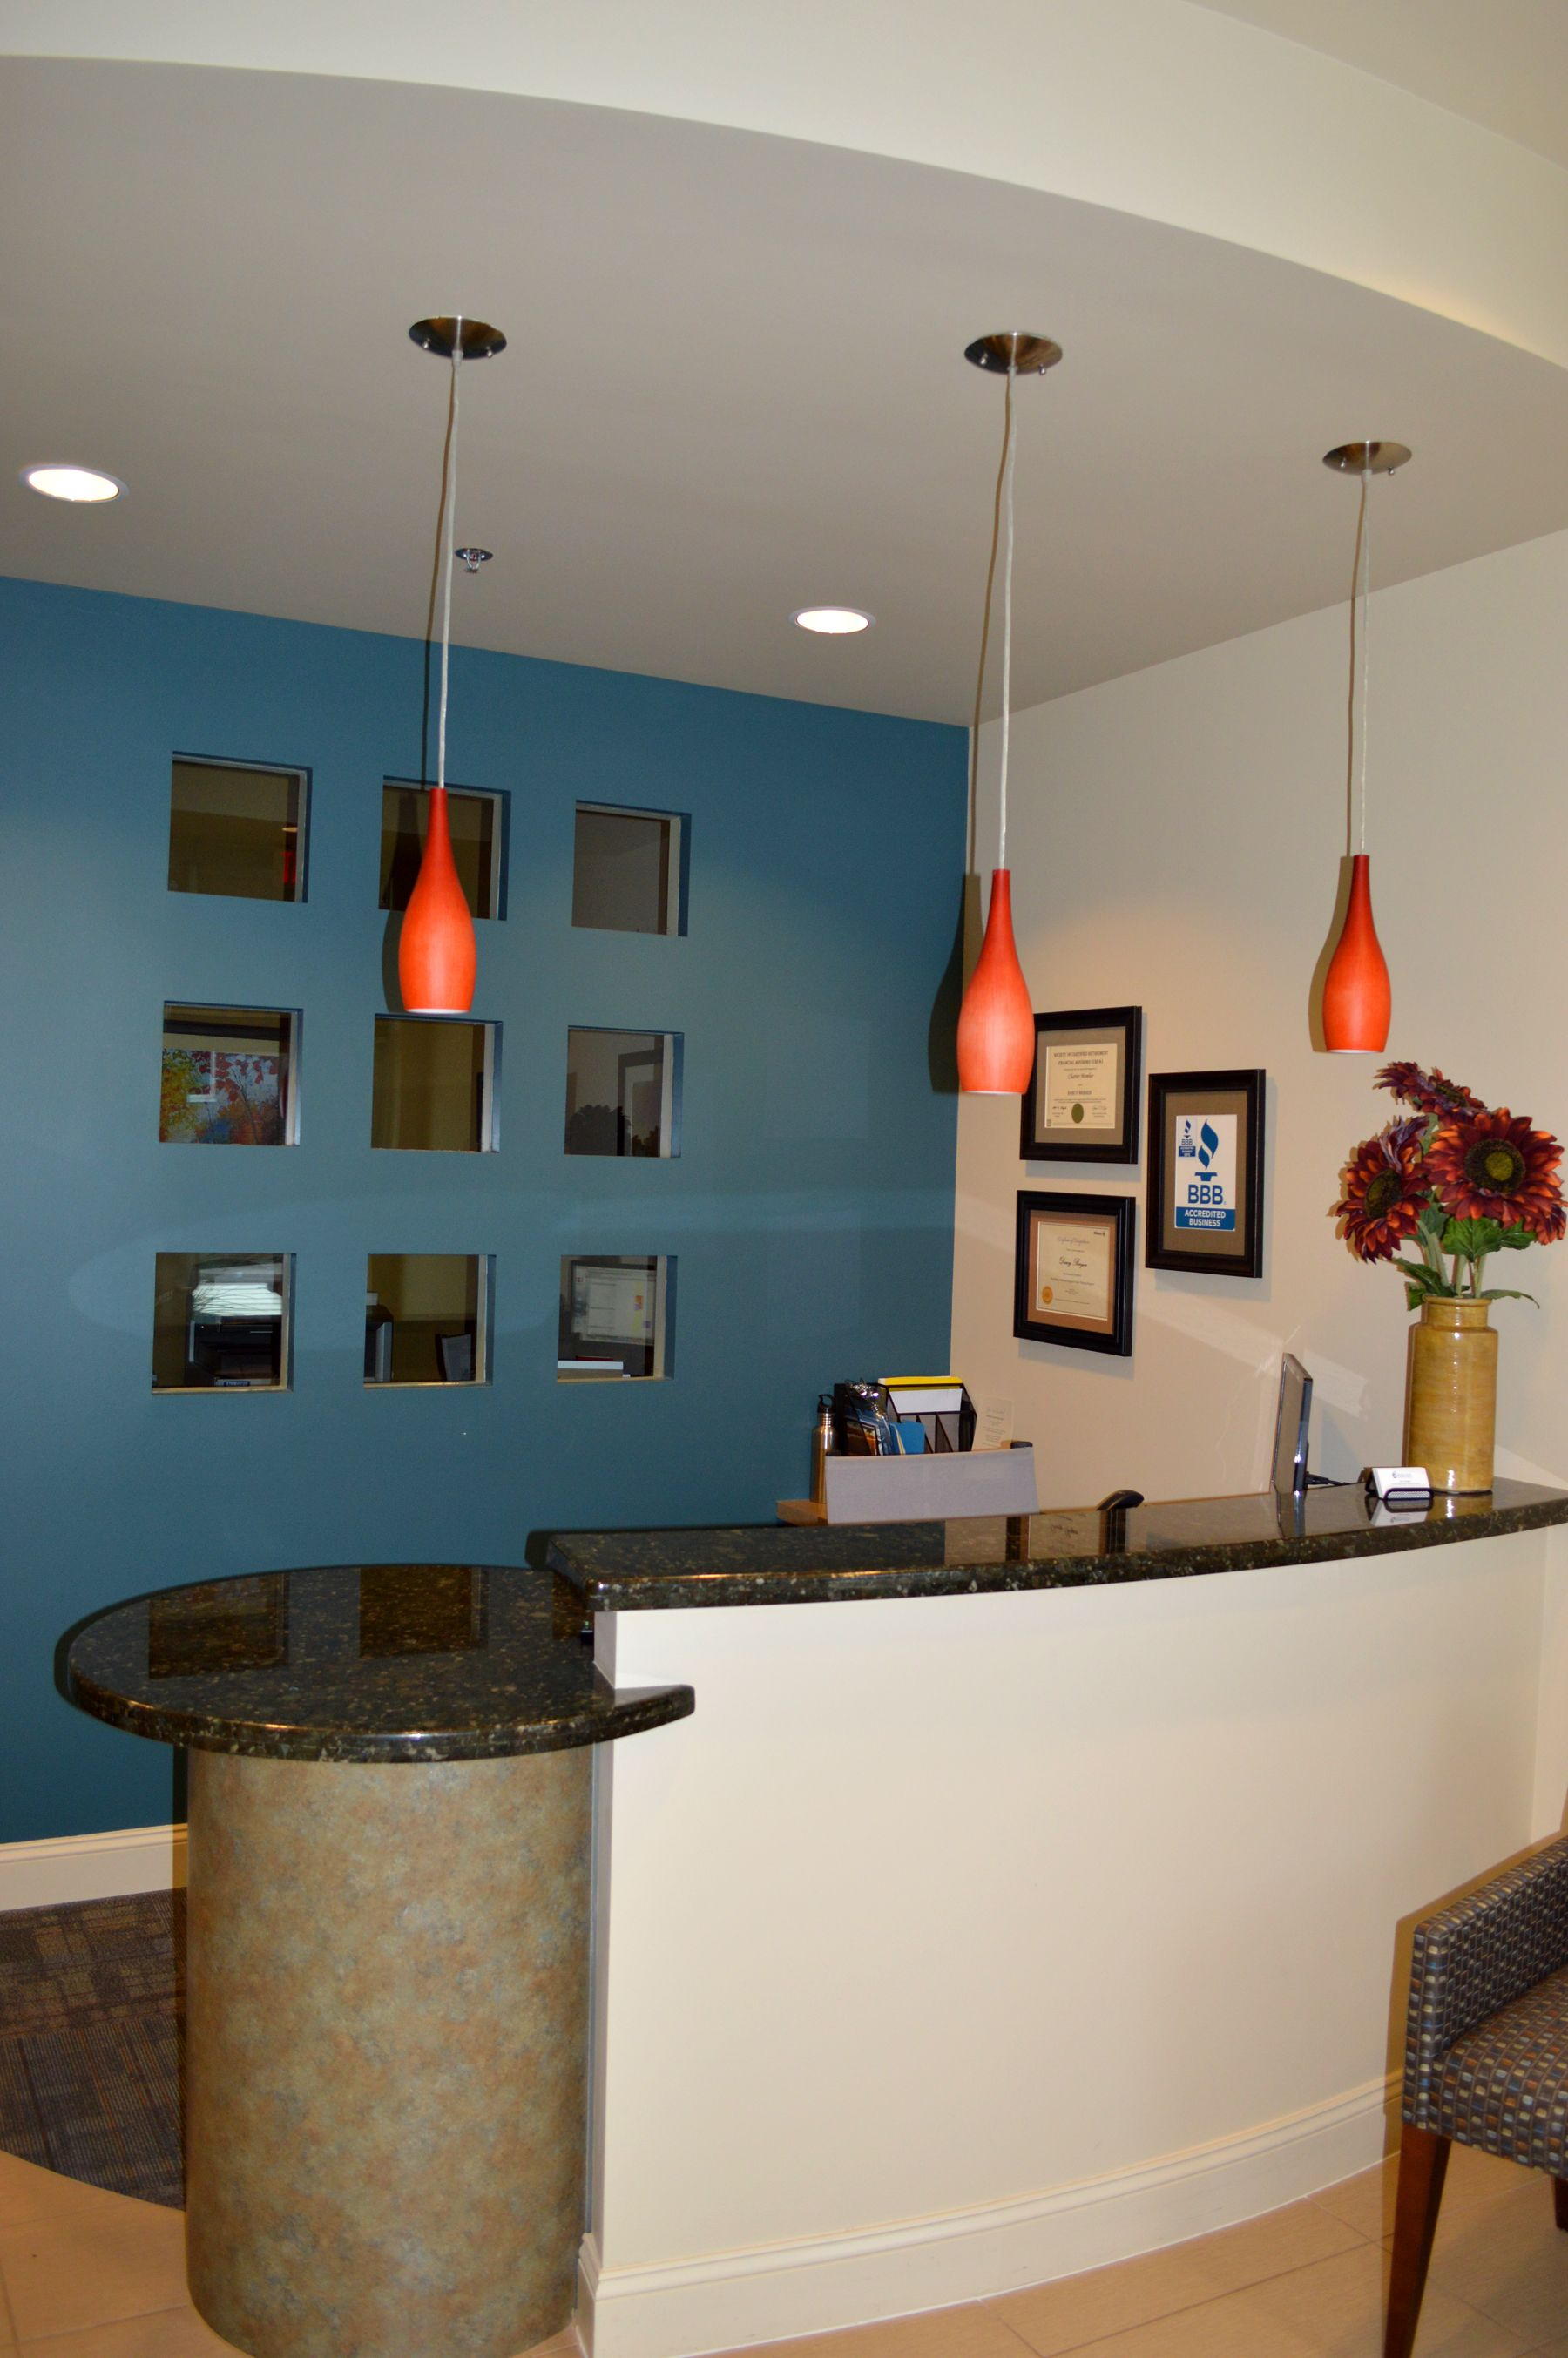 Clear Solutions Custom Reception Desk, Interior Design by NM Interiors Group